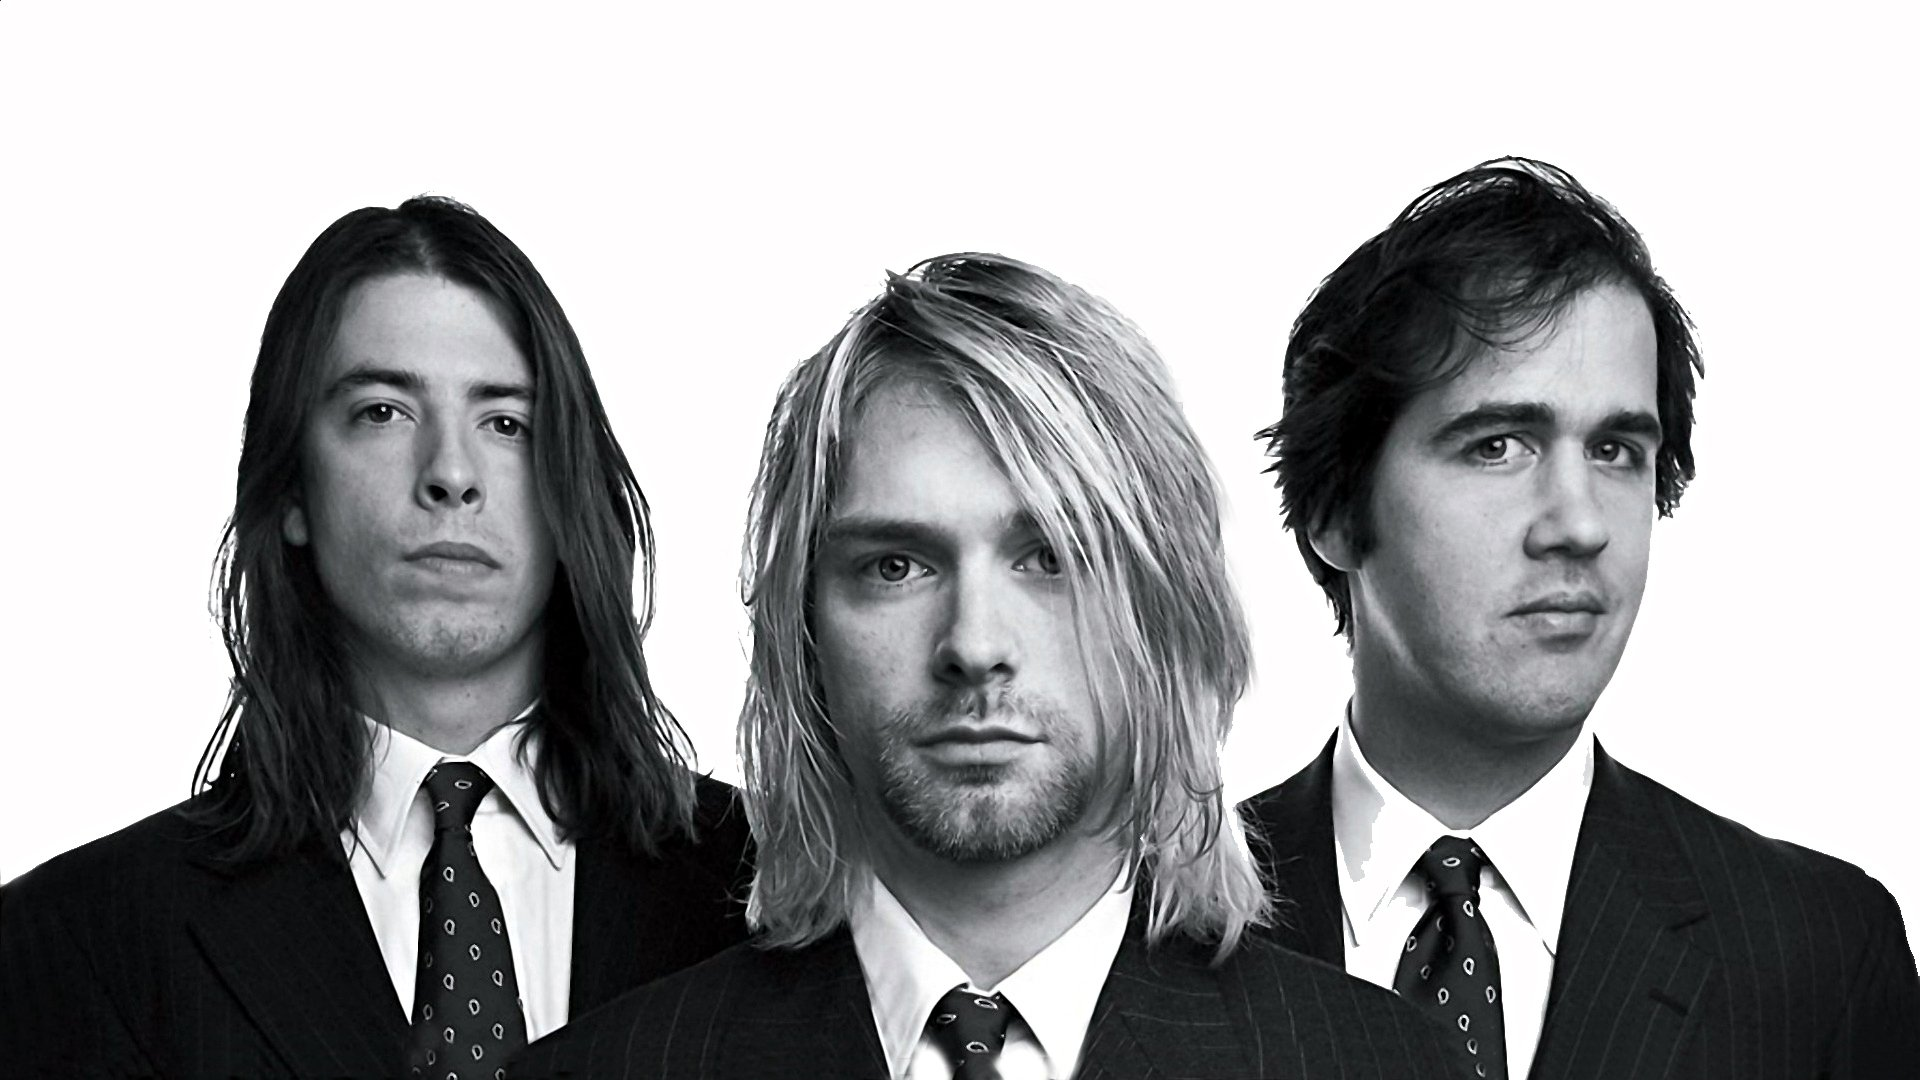 30 Nirvana Hd Wallpapers Background Images Wallpaper Abyss